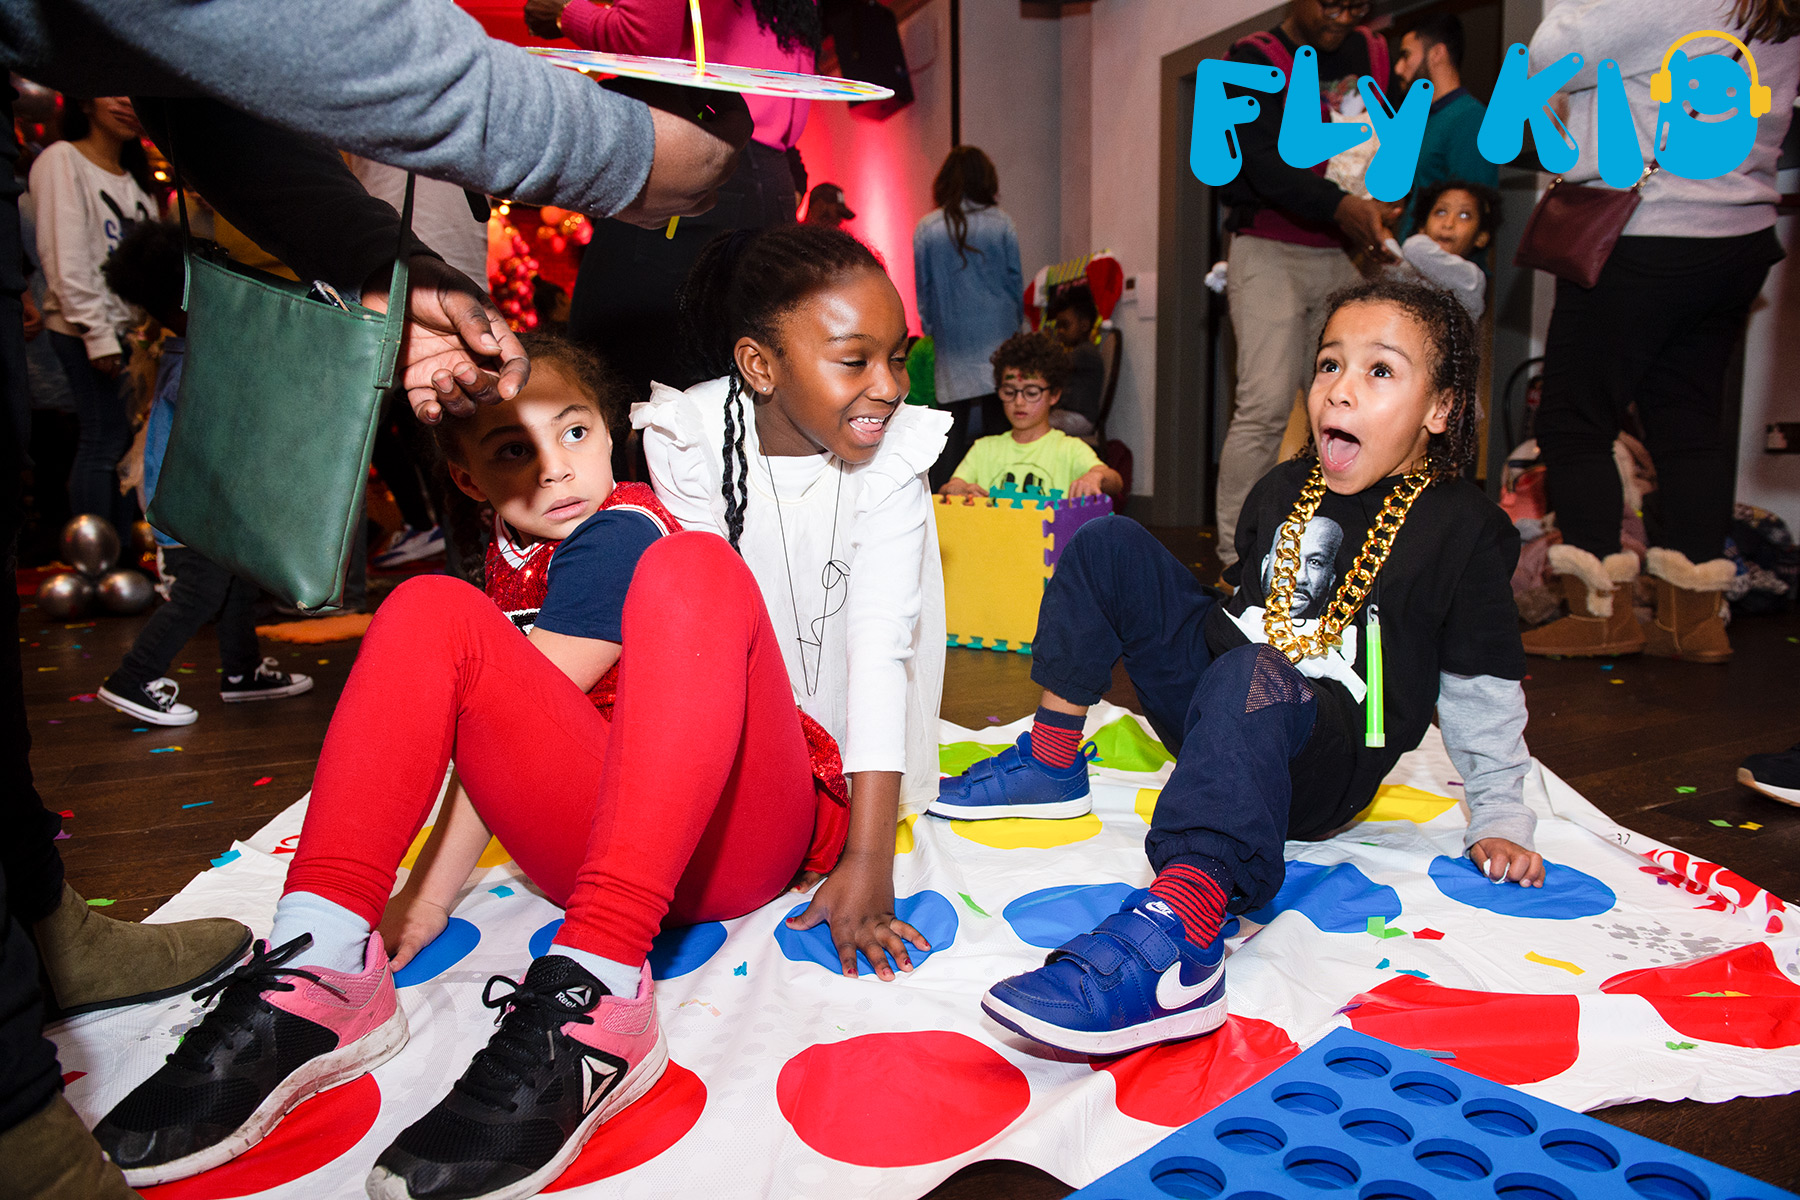 FLY-KID x The Family Hiphop & RnB Party